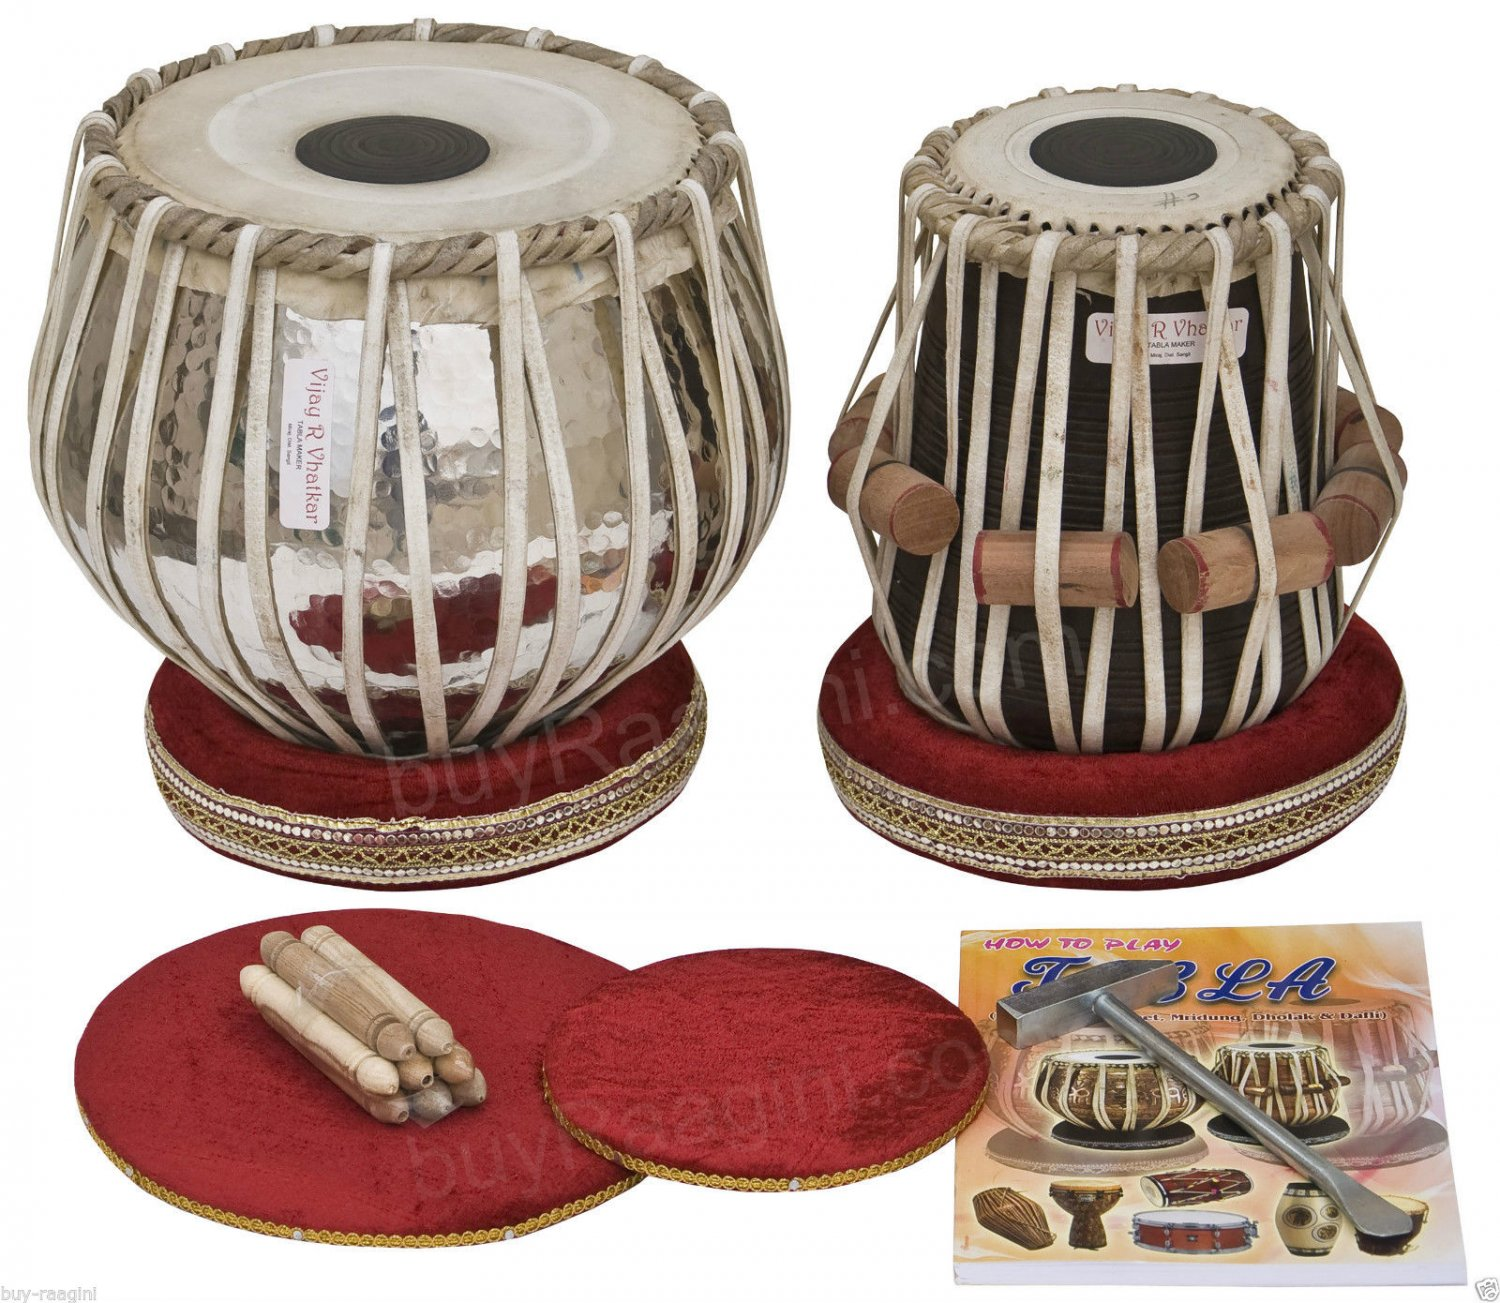 TABLA SET/VHATKAR�/CONCERT CHROMED COPPER BAYAN 4KG/BLACK SHEESHAM DAYAN/BBD-1